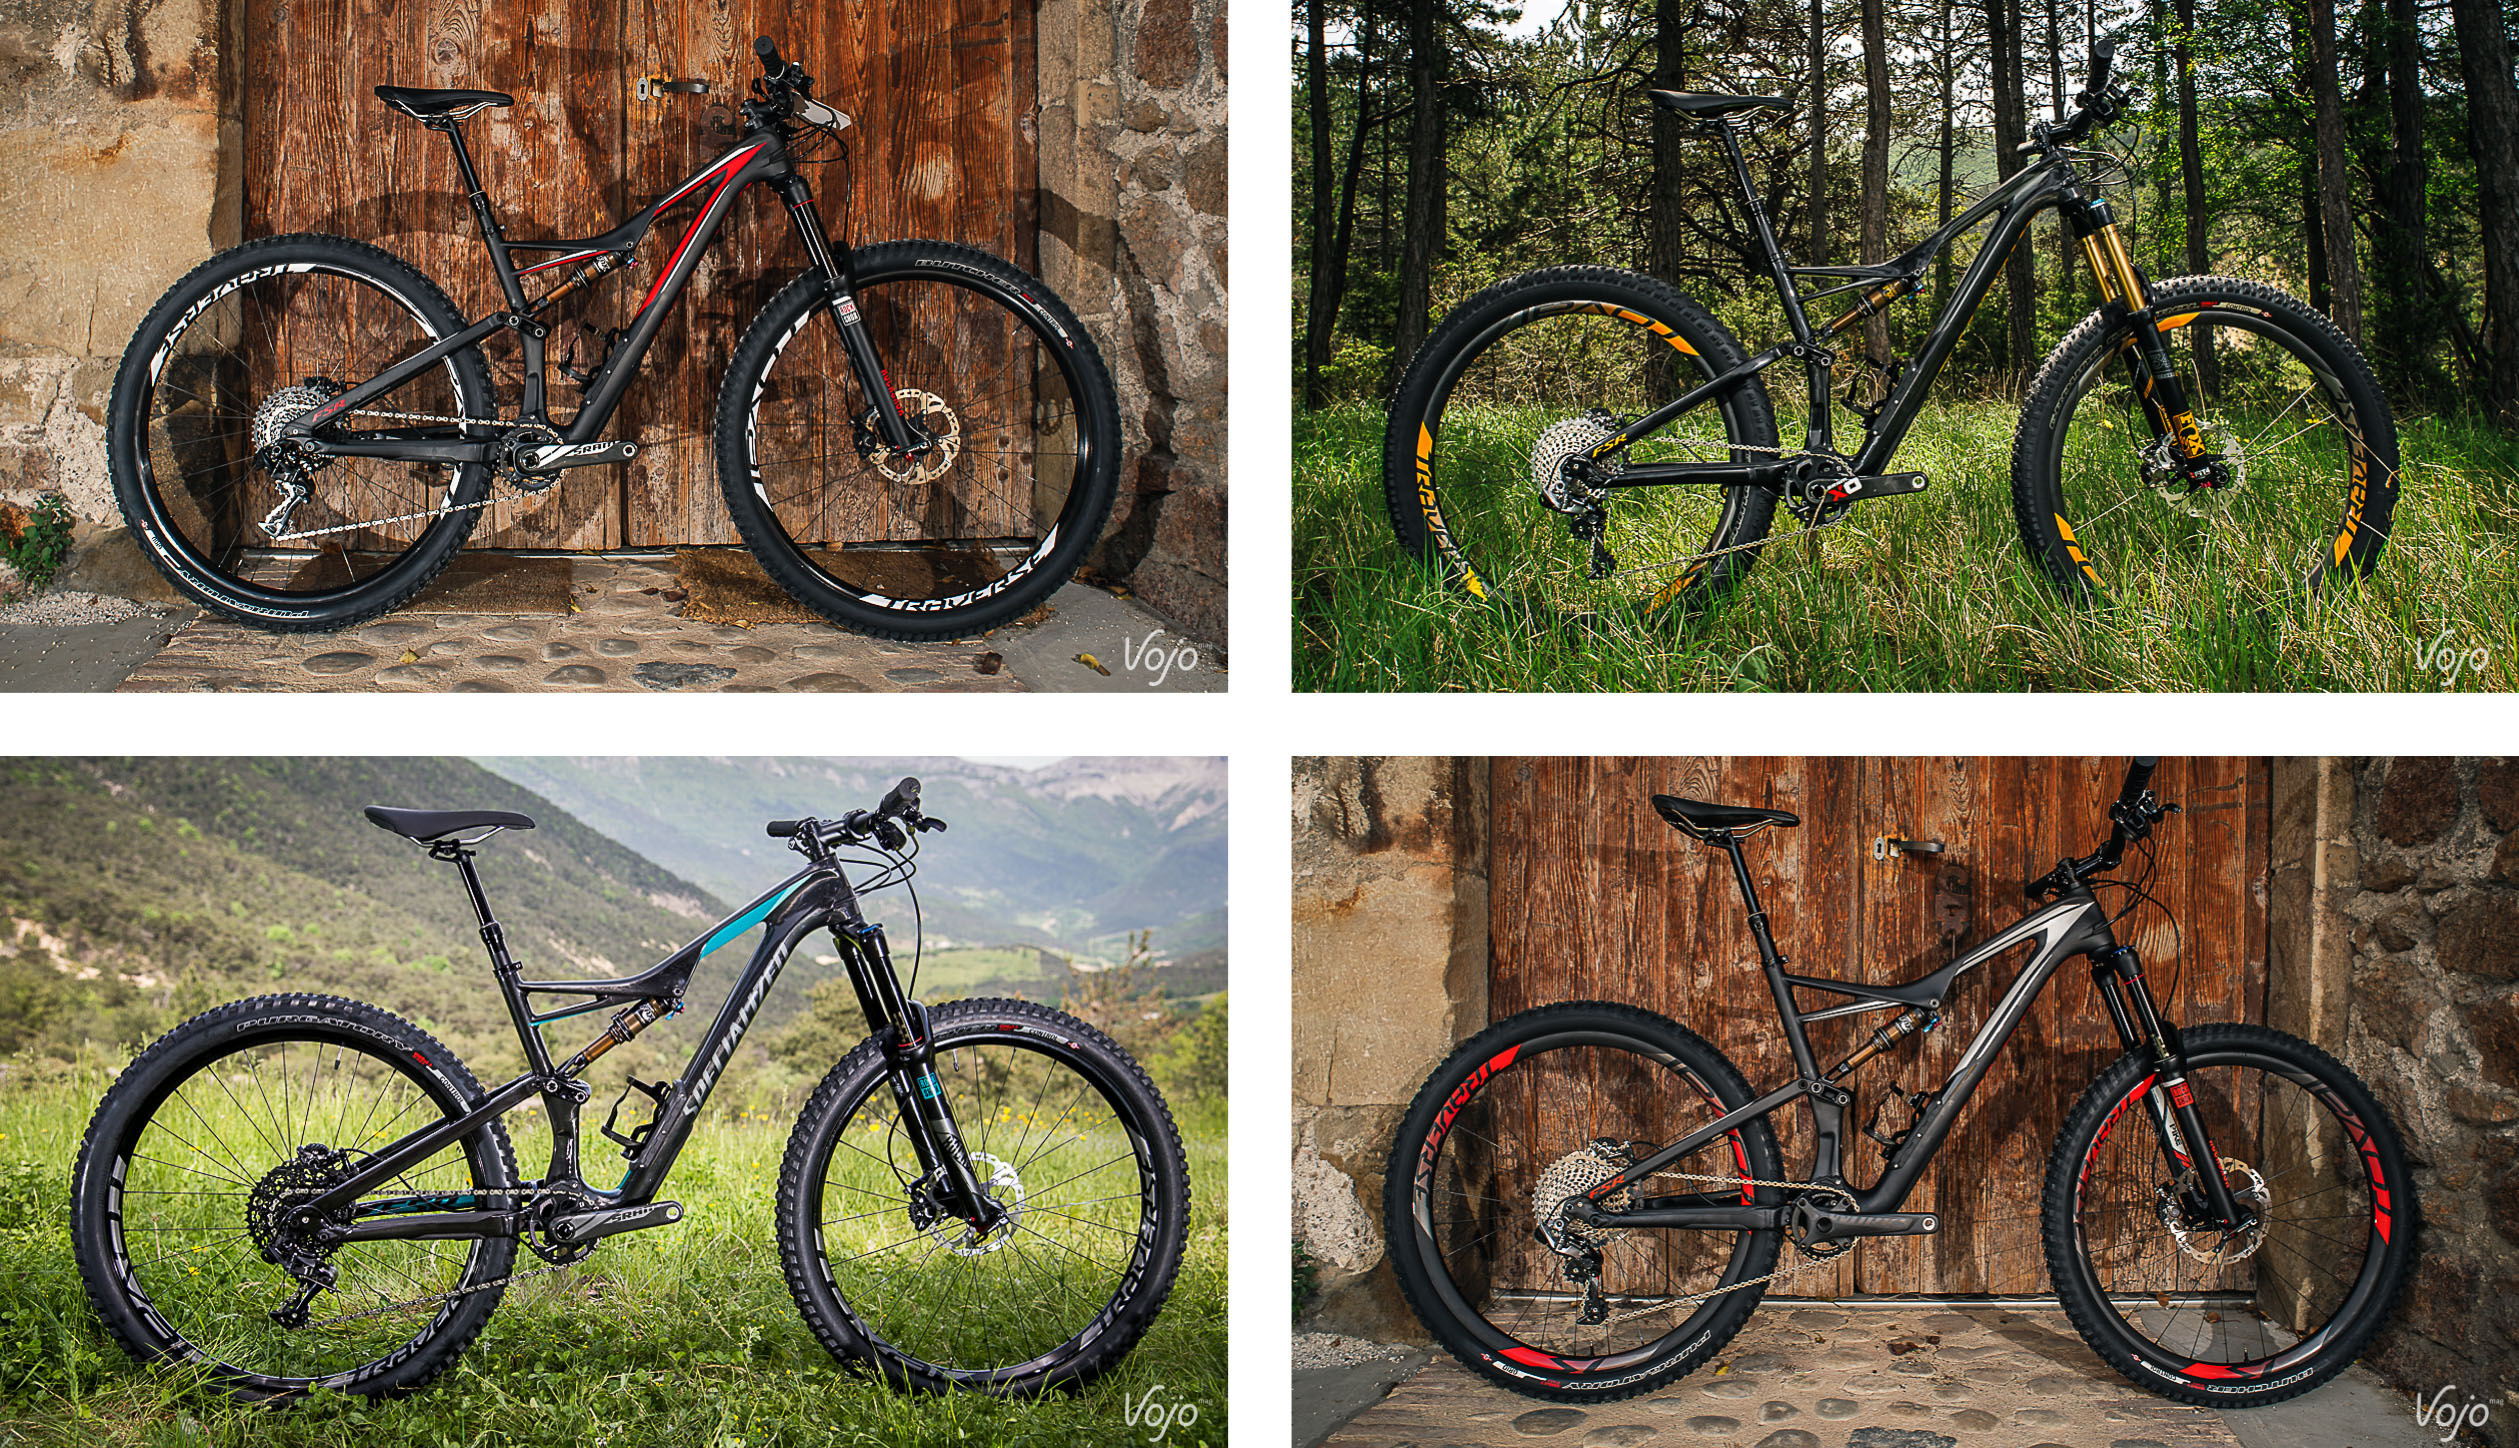 Compo_17_Specialized_Stumpjumper_2016_Swat_Copyright_OBeart_VojoMag-1